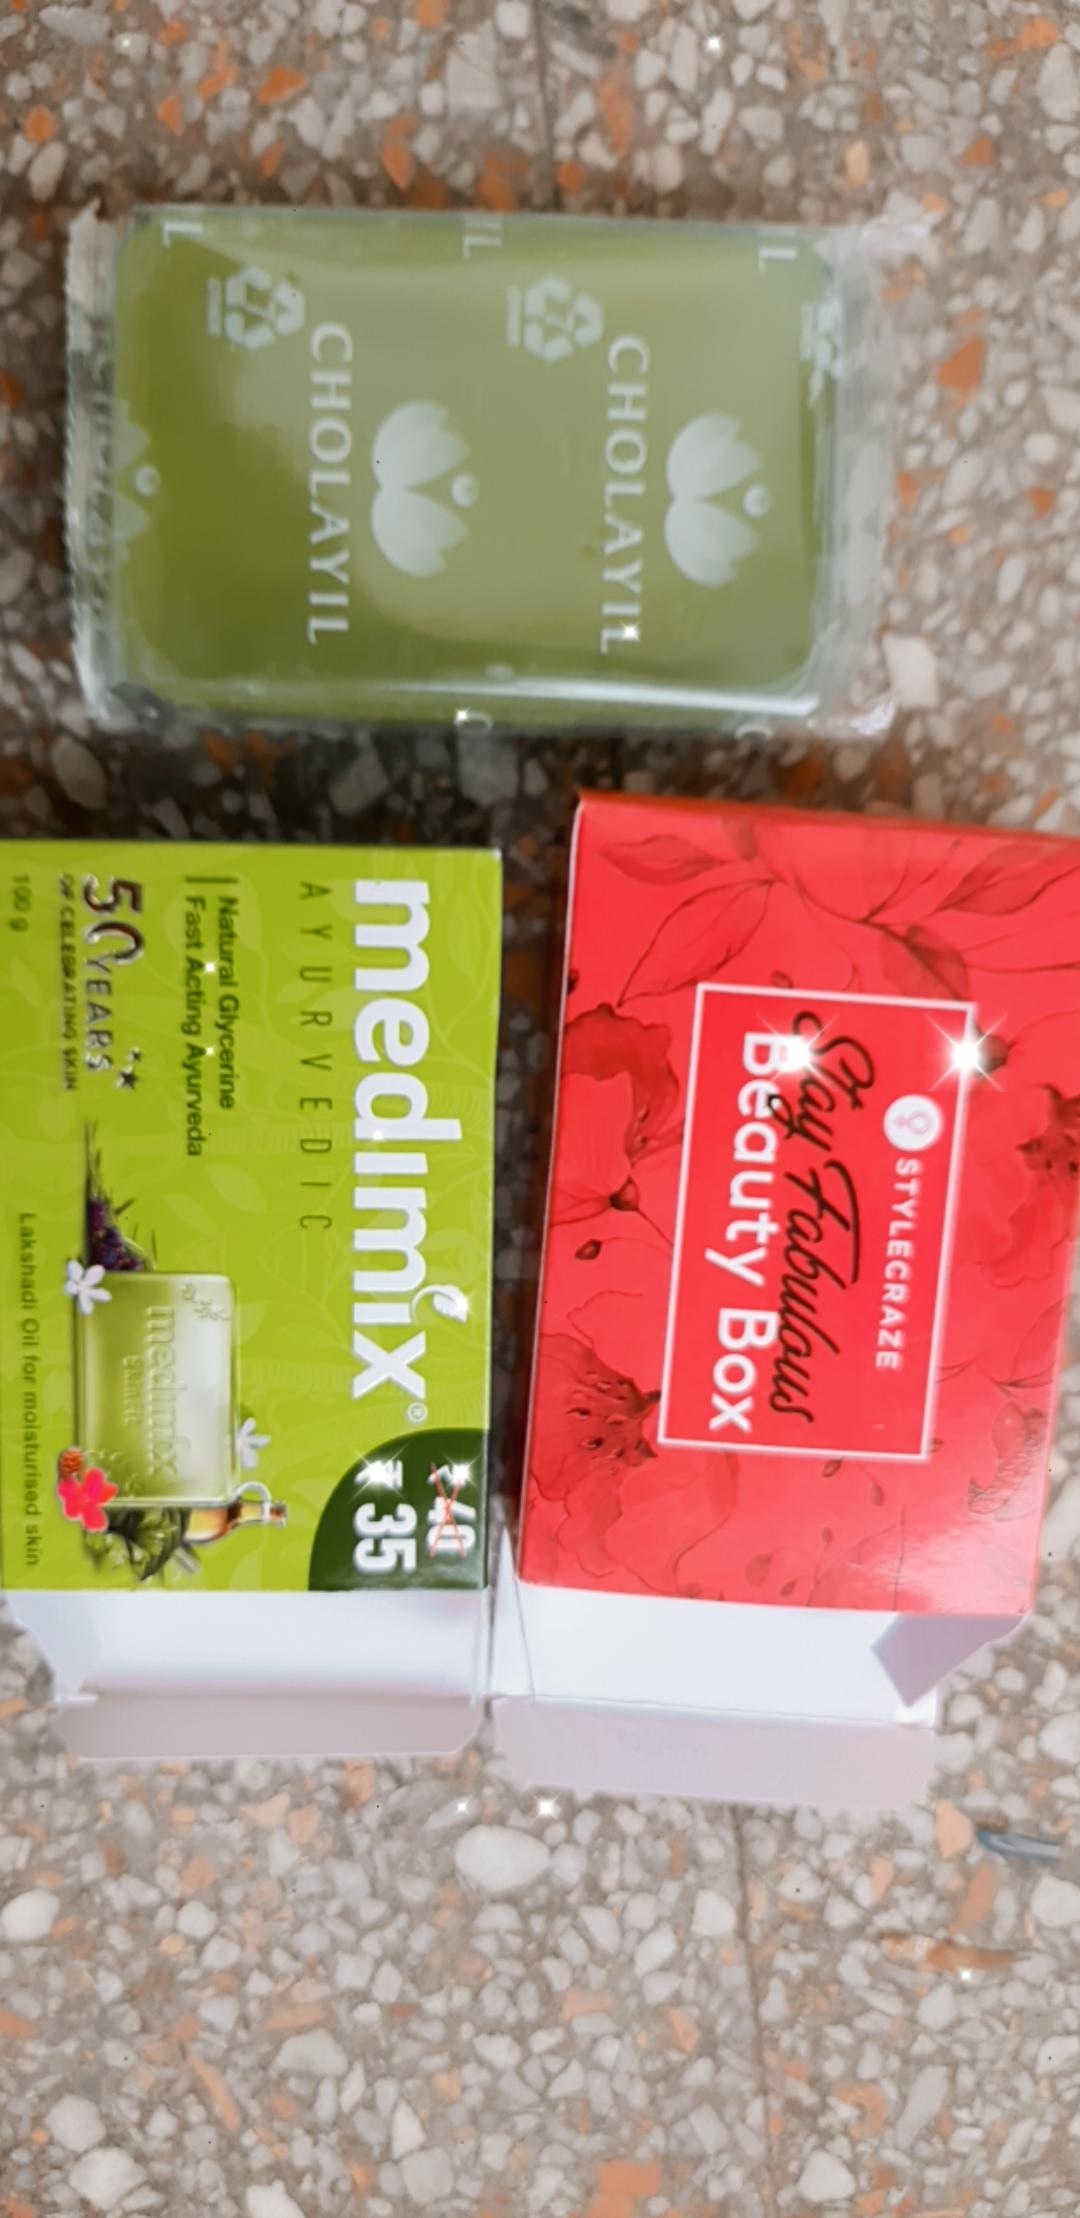 Medimix Ayurvedic 18 Herb Soap-A must buy-By sakshi_foodie_rendezvous